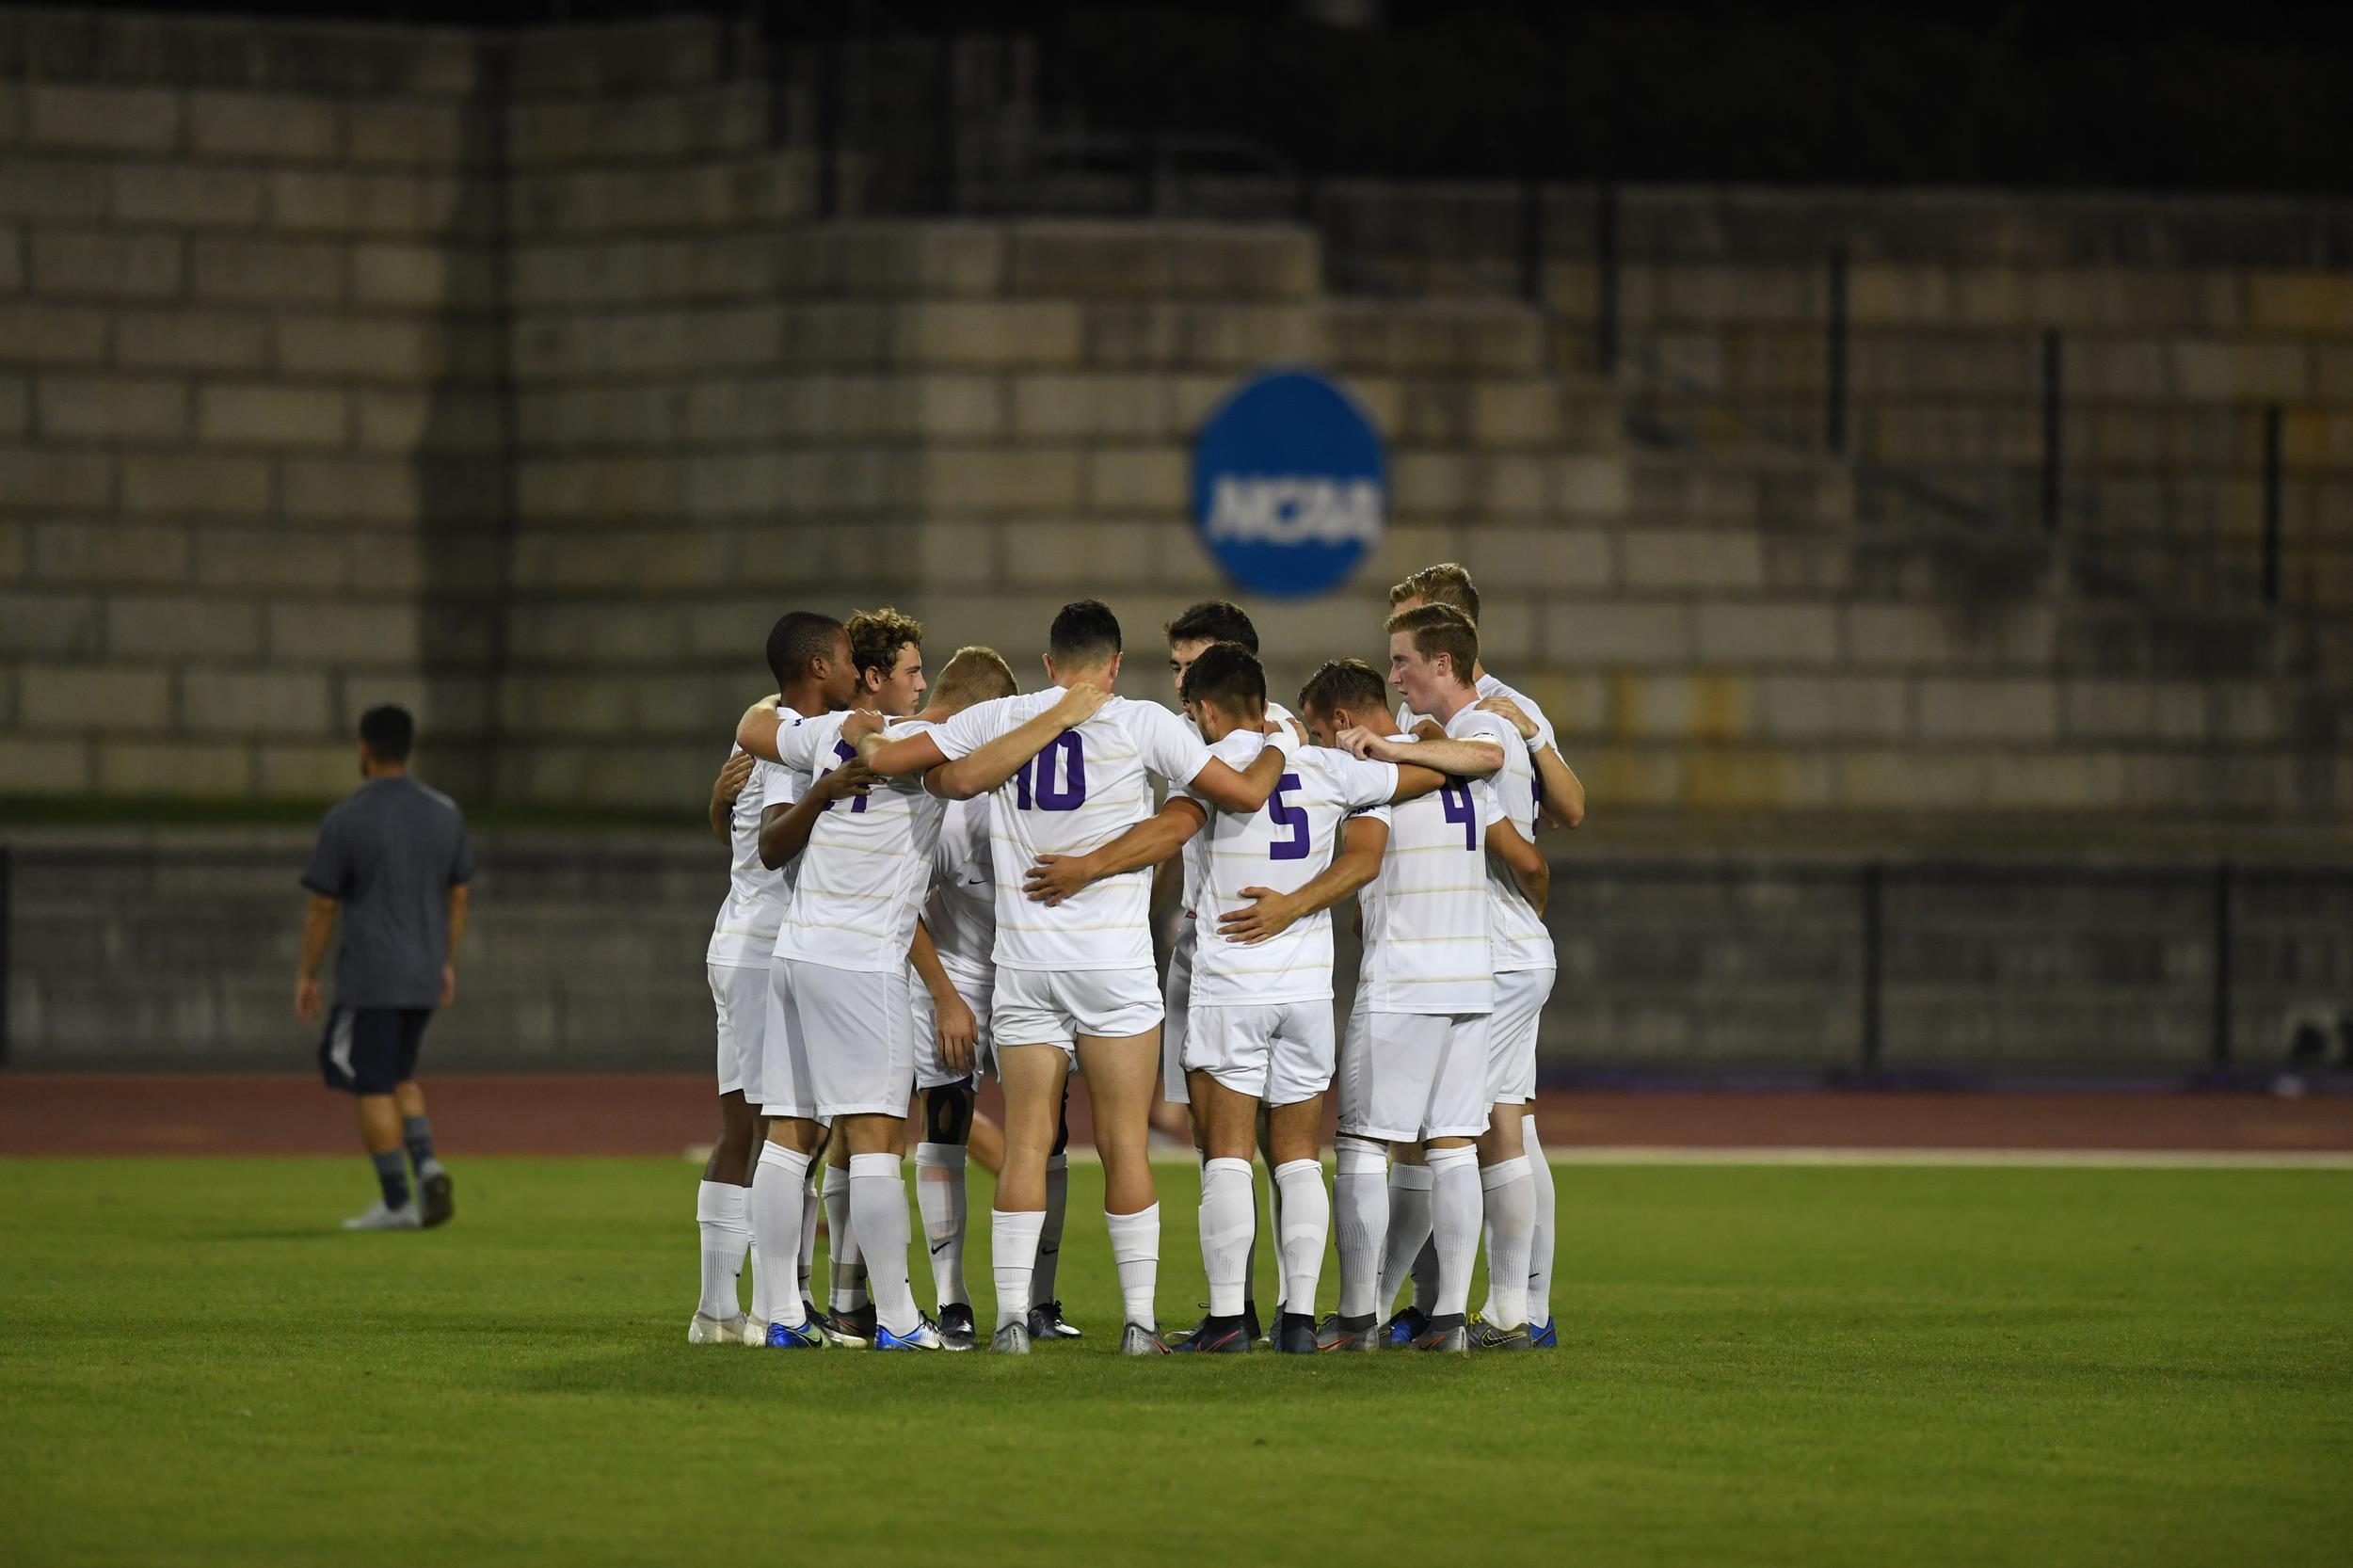 Dukes To Compete In Spring Soccer Cup Hosted By Wake Forest James Madison University Athletics